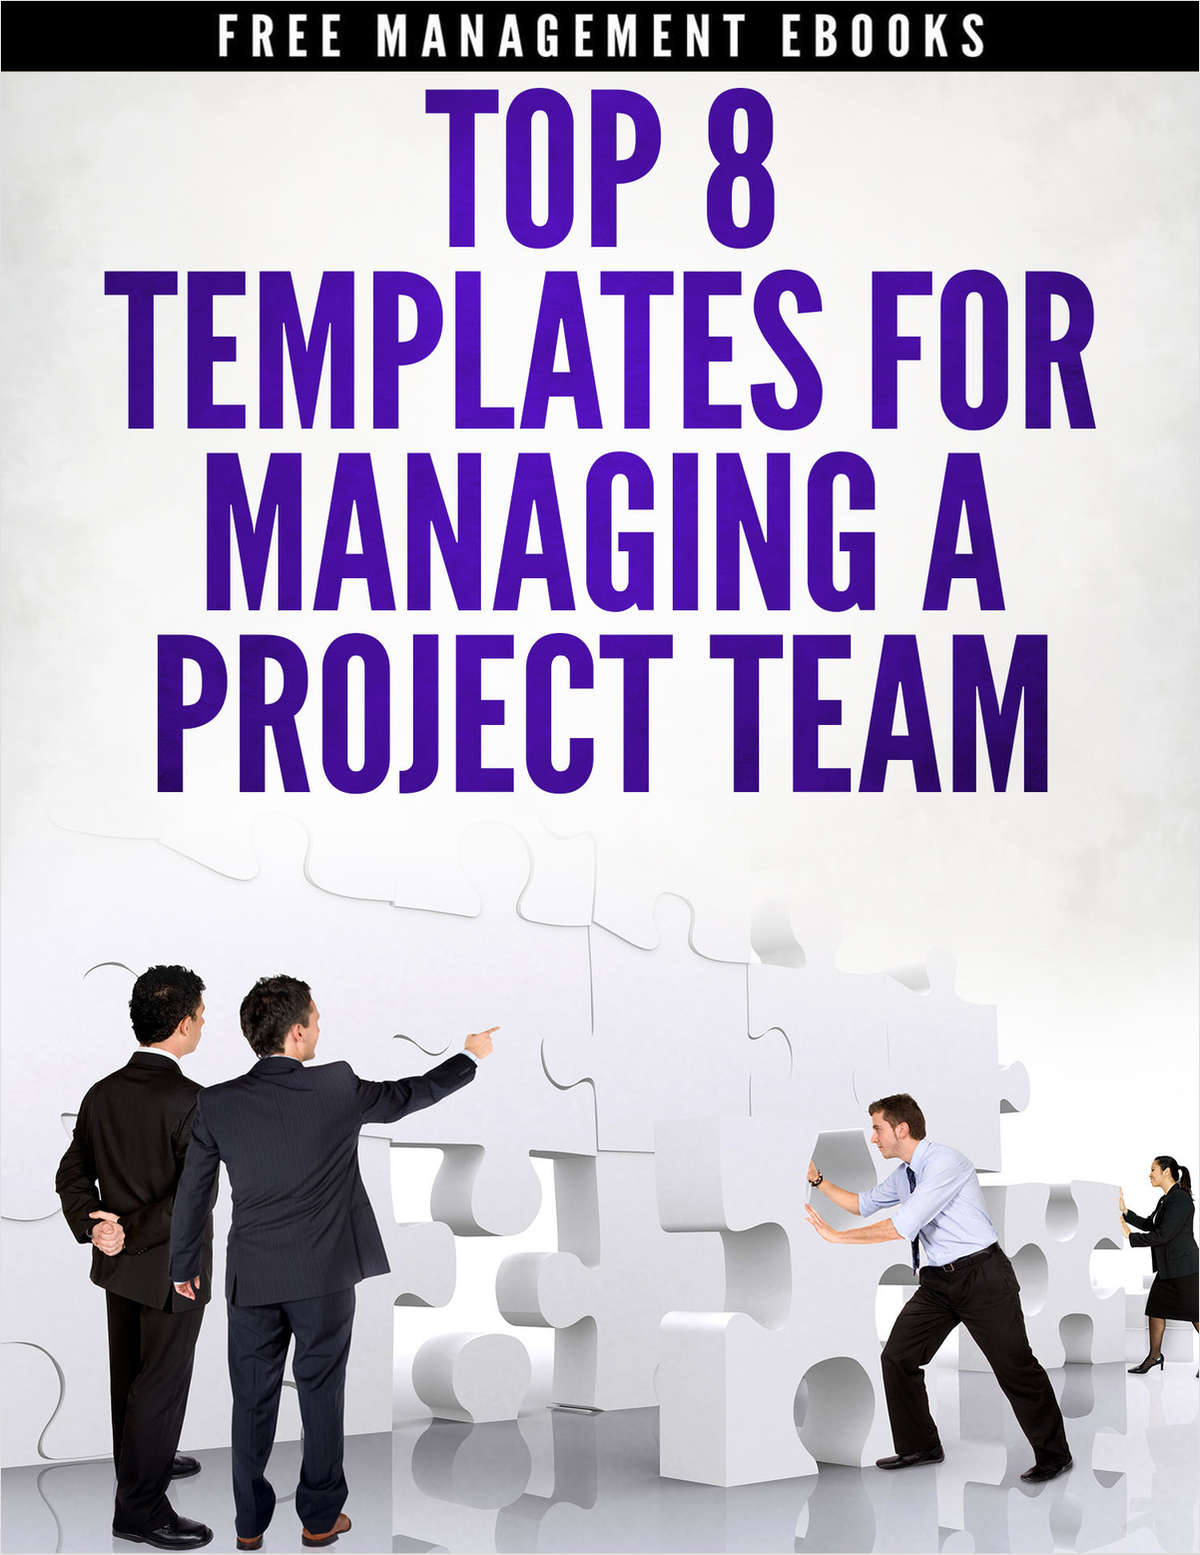 Top 8 Project Templates for Managing a Project Team